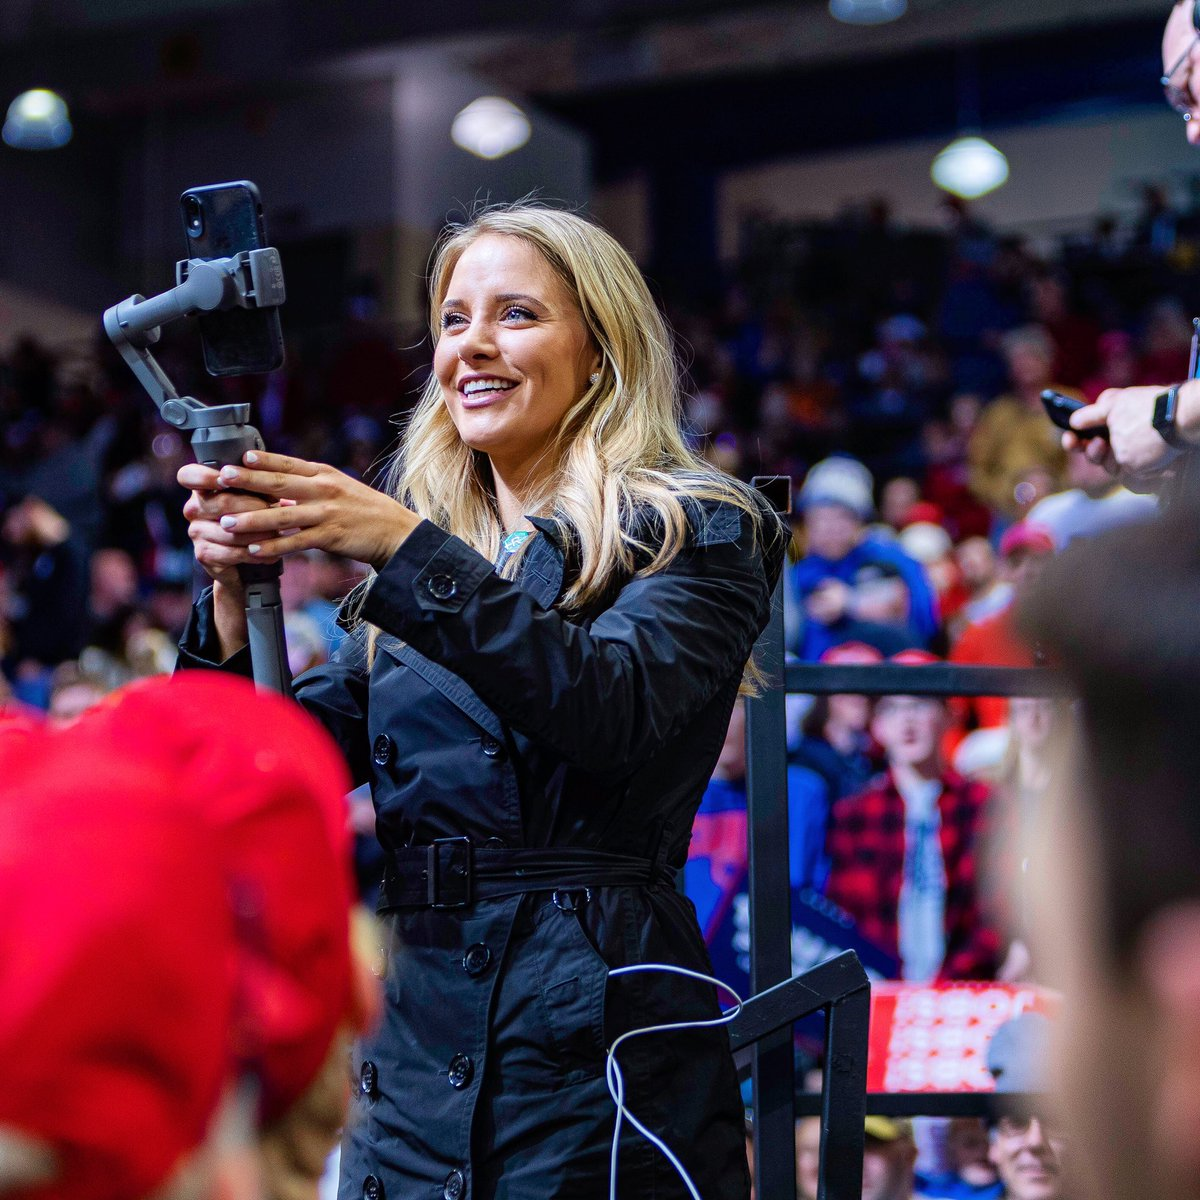 Kayleigh Mcenany On Twitter So Proud Of My Beautiful Sister Ryannmcenany Taking Great Social Media Content For Realdonaldtrump And Displaying The Beauty And The Joy Of The Unifying Teamtrump Movement Https T Co Hnap93ng17